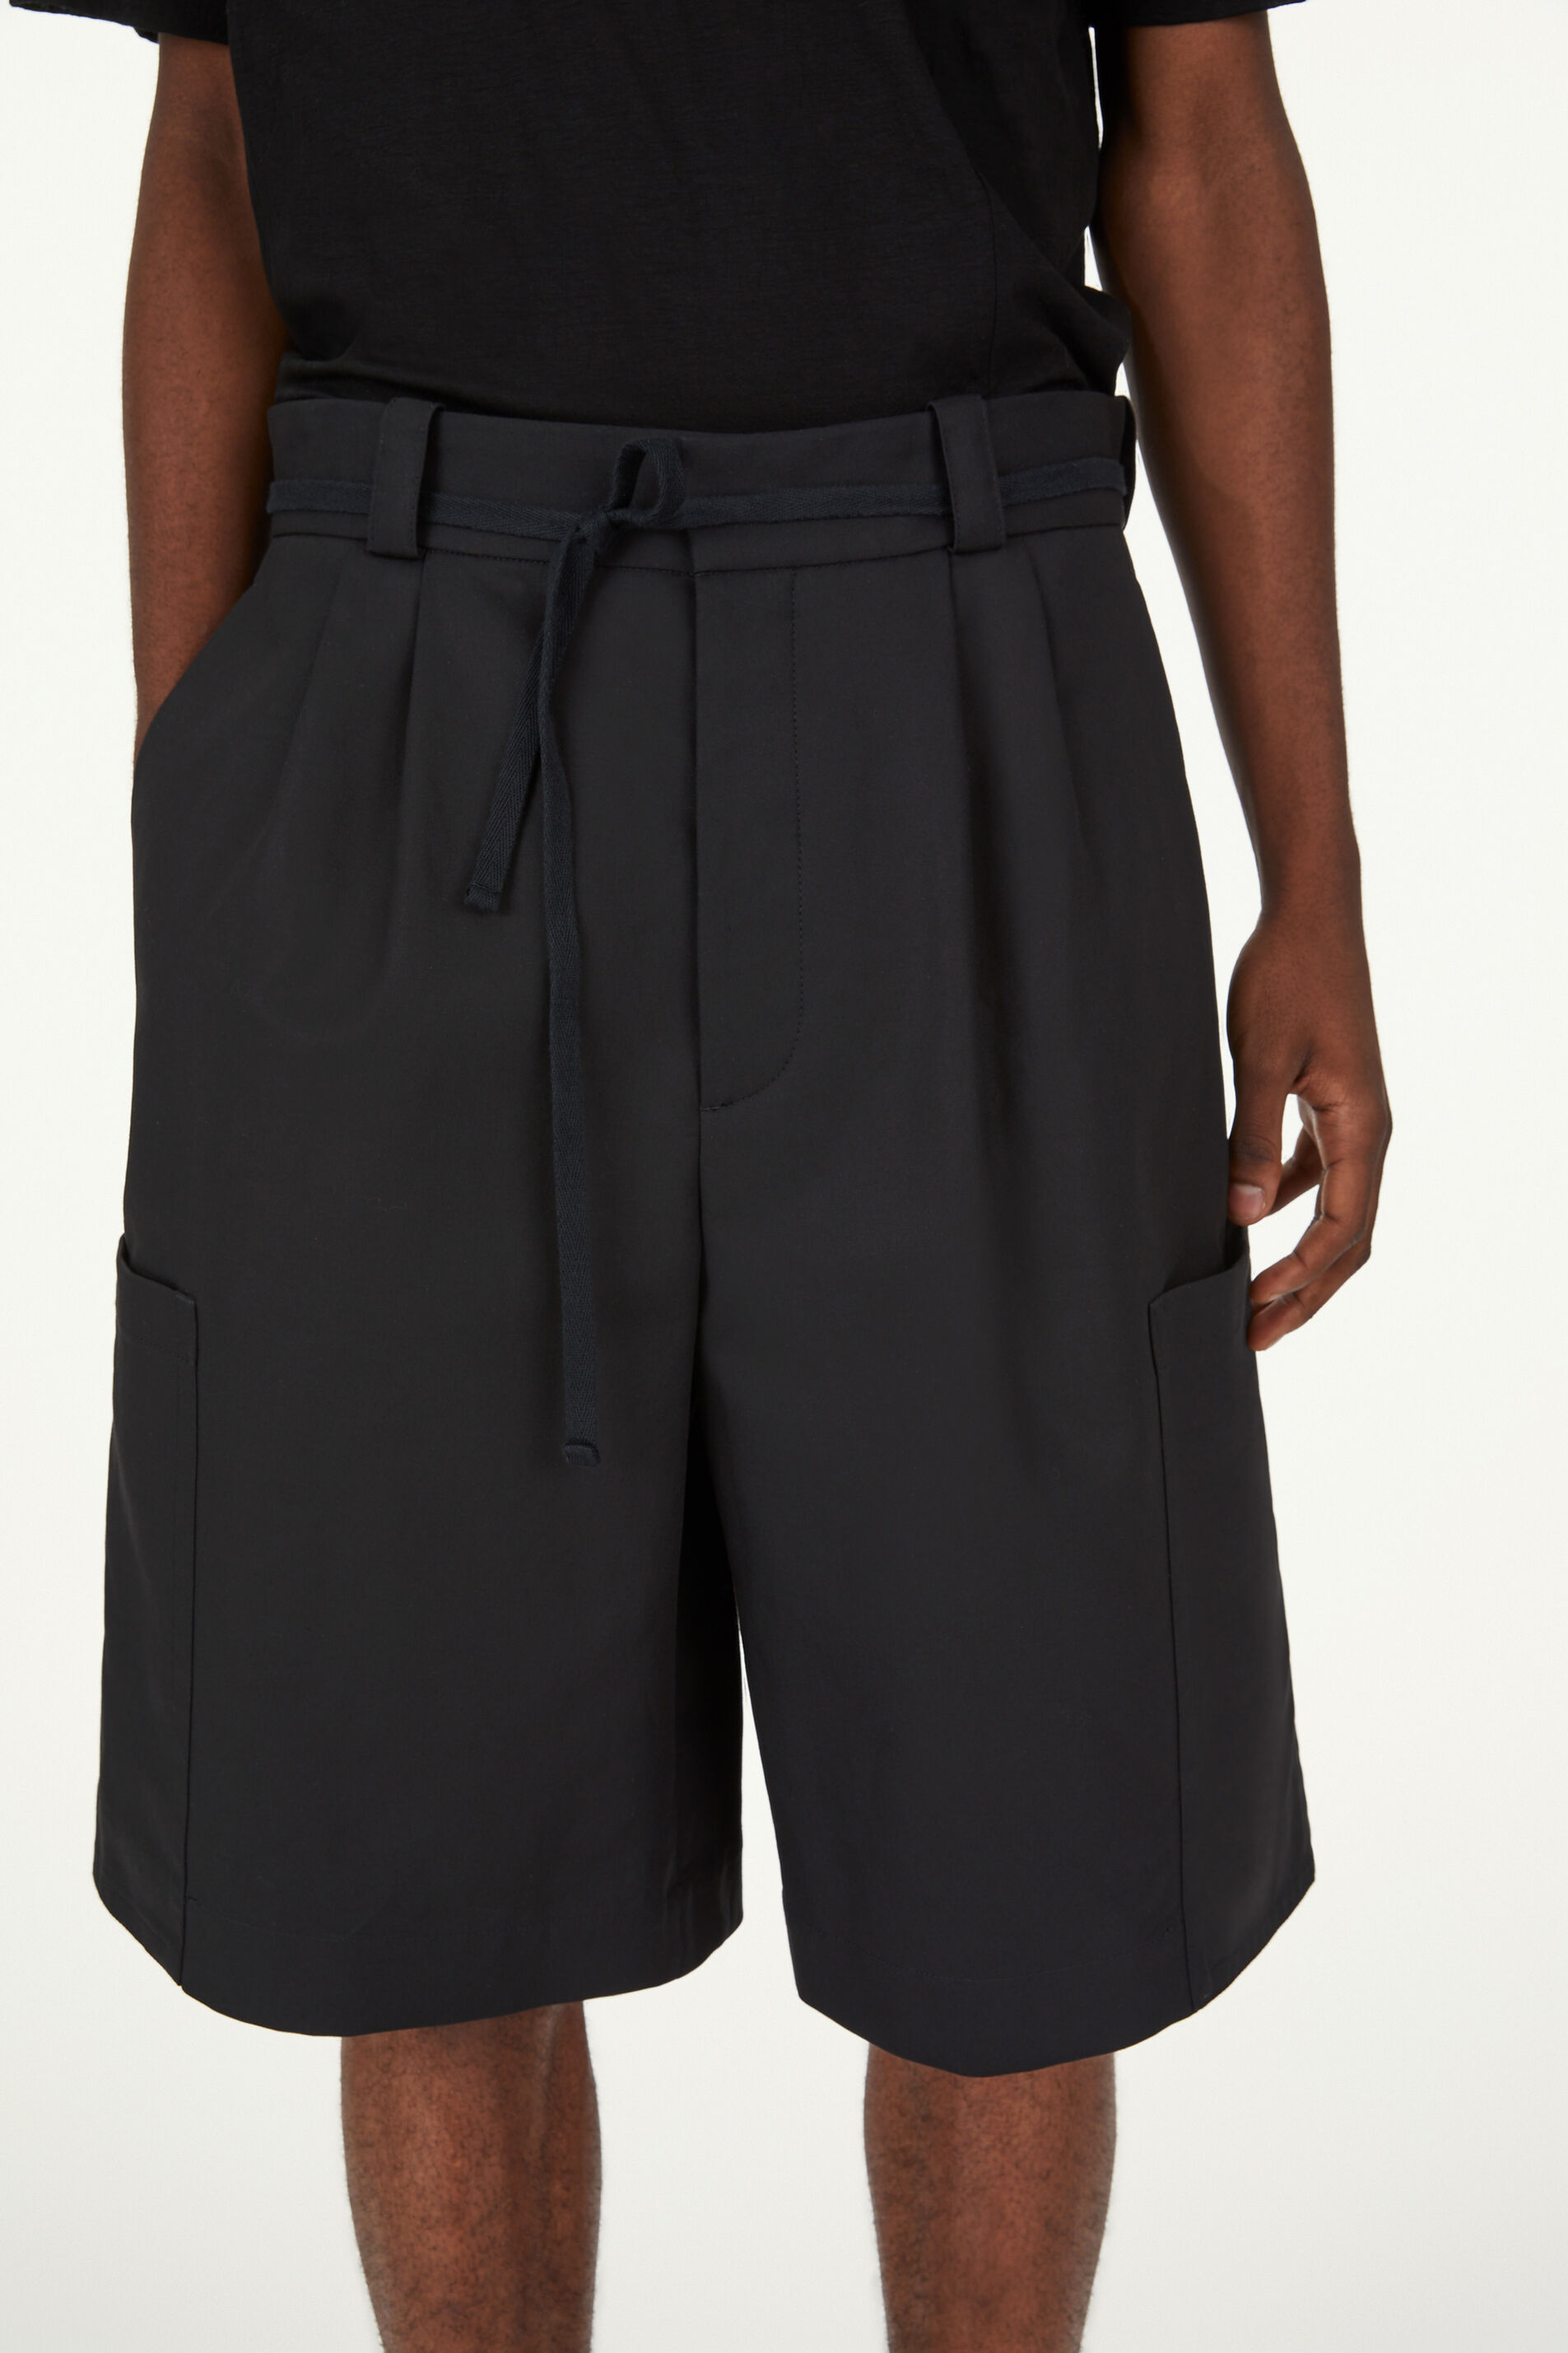 Shorts, black, large